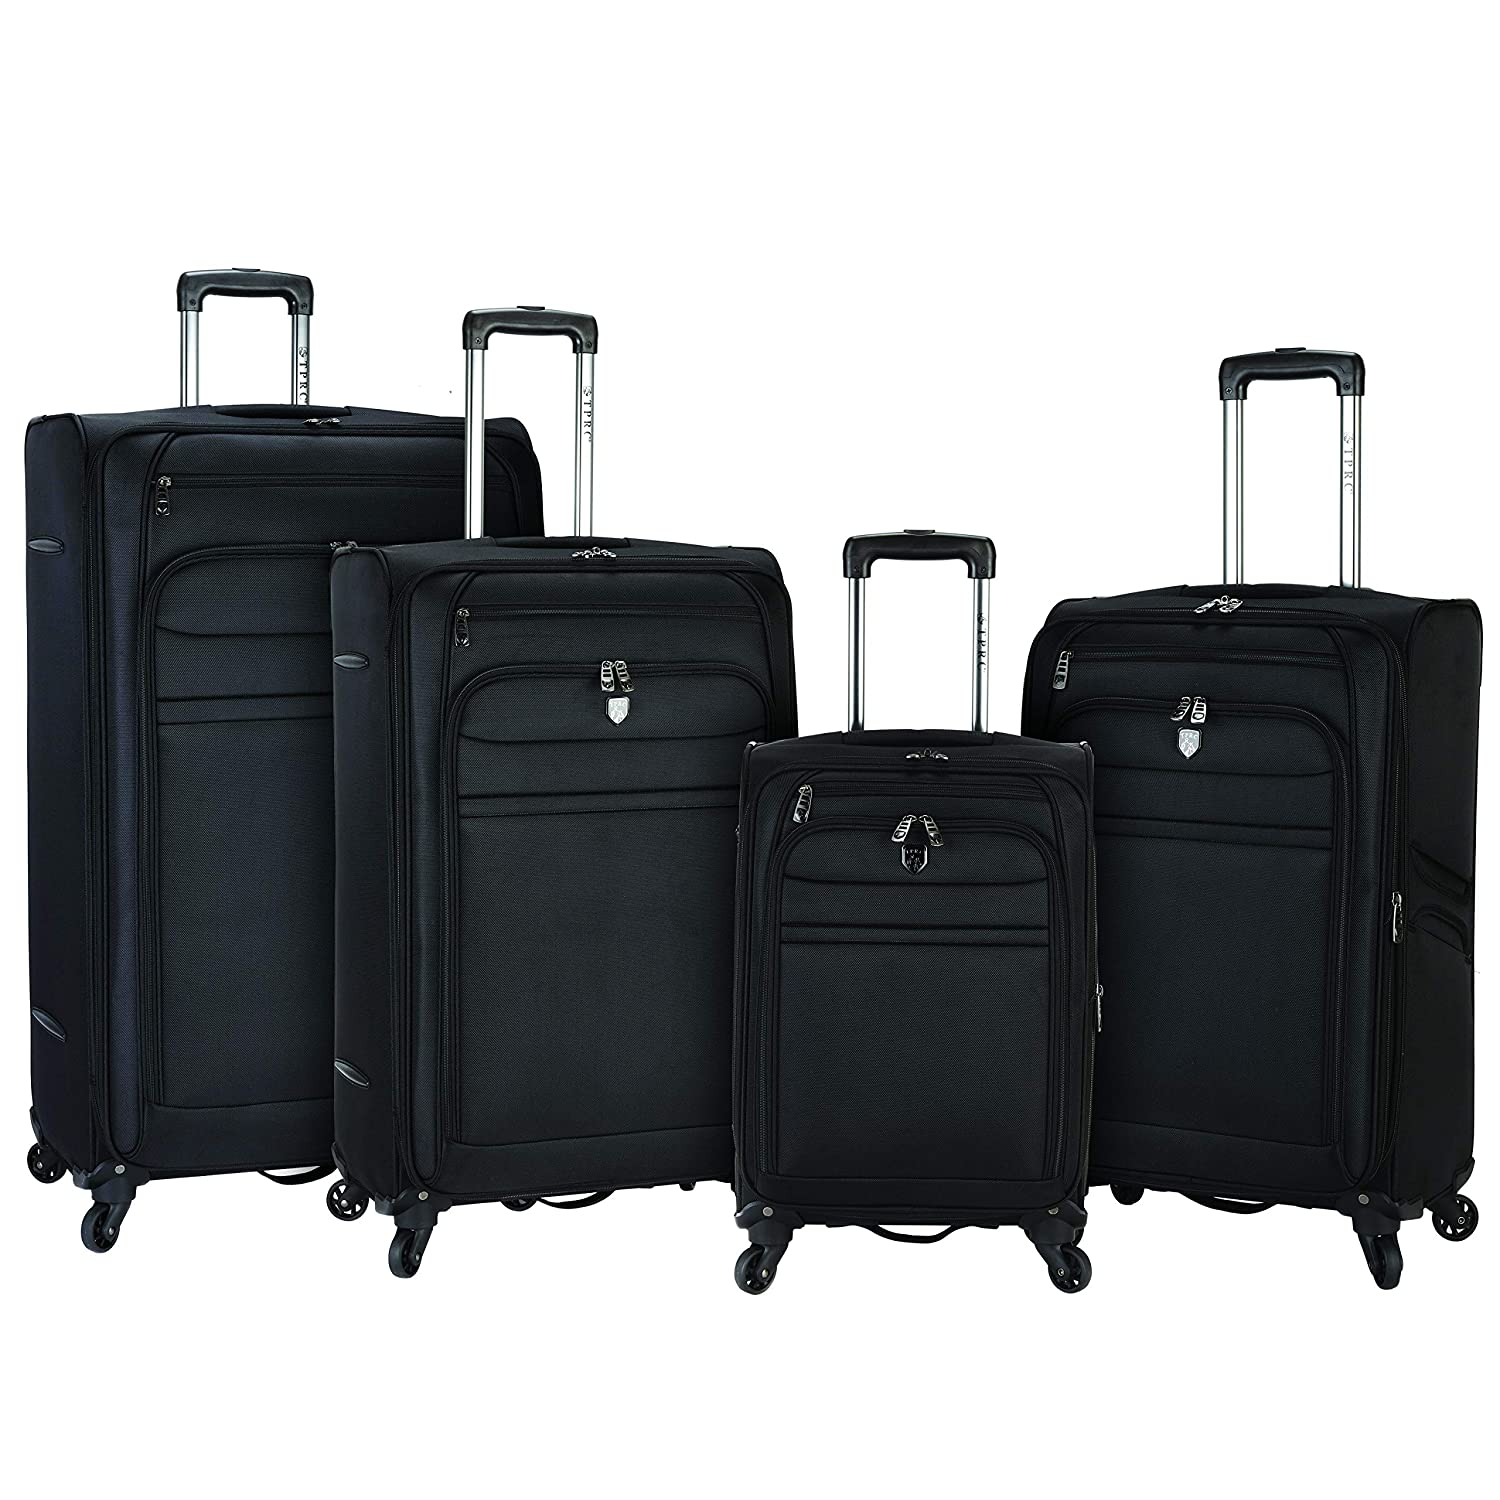 Image of Travelers Club Luggage Business Class Expandable Luggage with Spinner Wheels Luggage